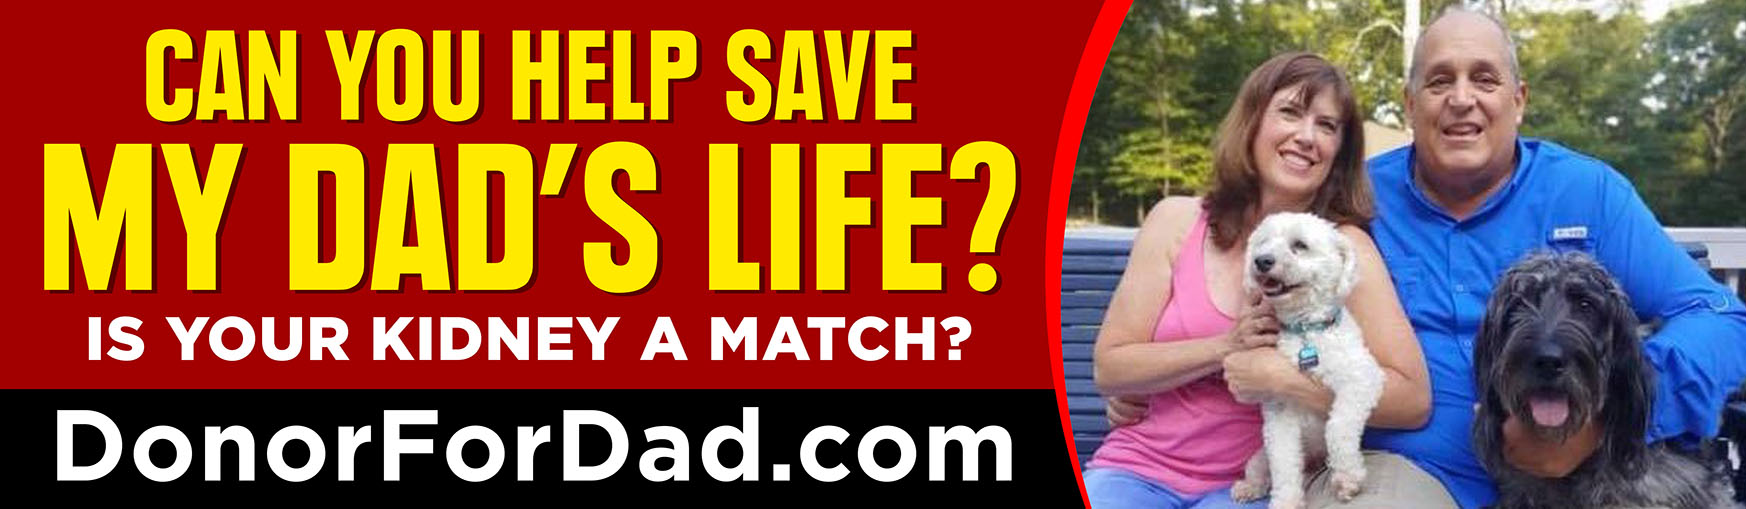 Save My Dad's Life